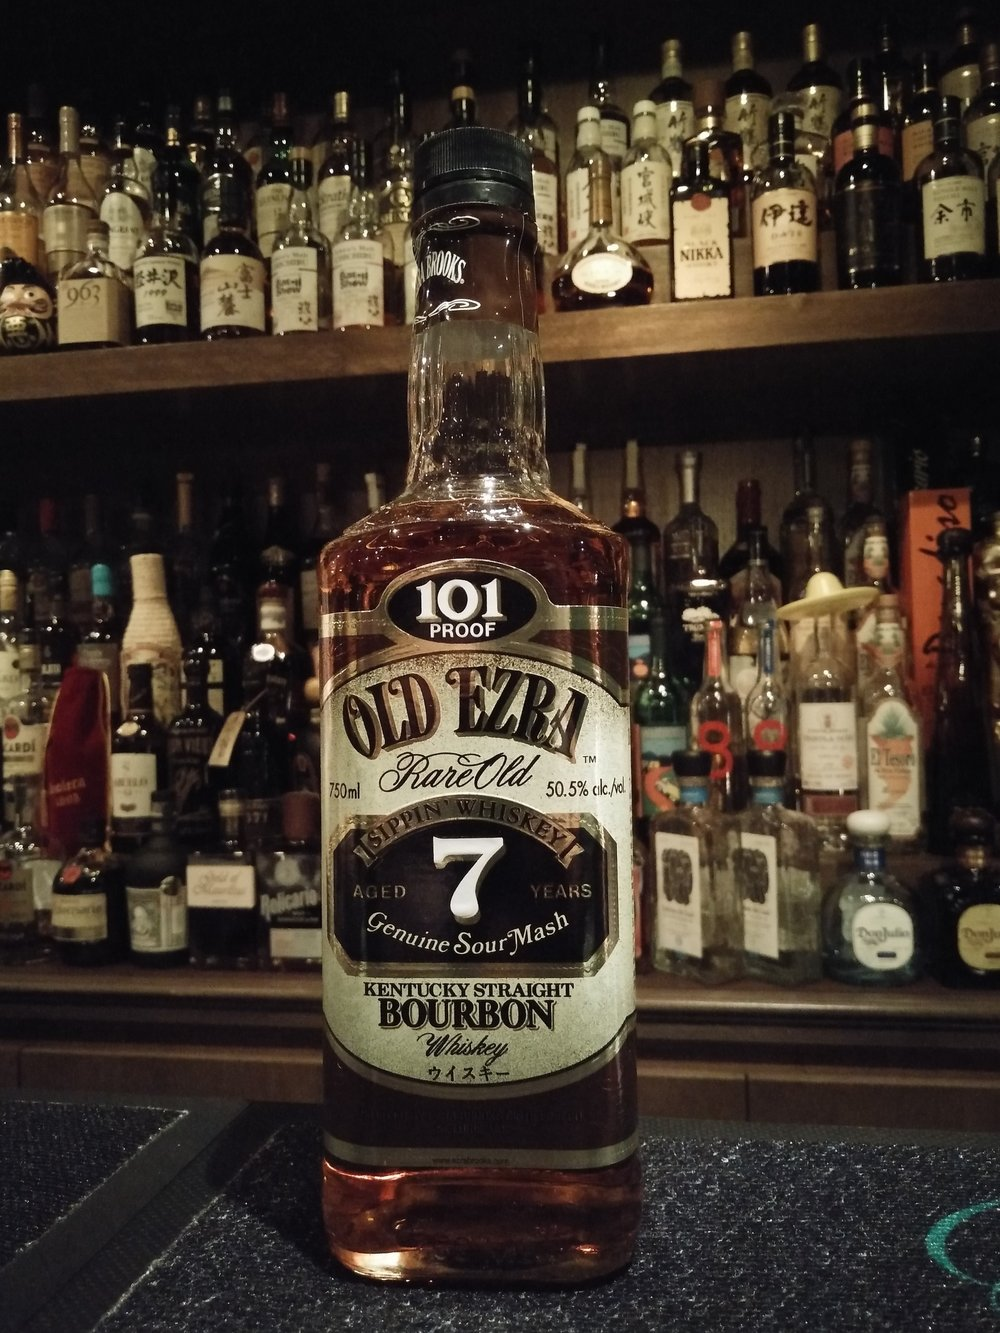 The Old Ezra used in the whiskey sour